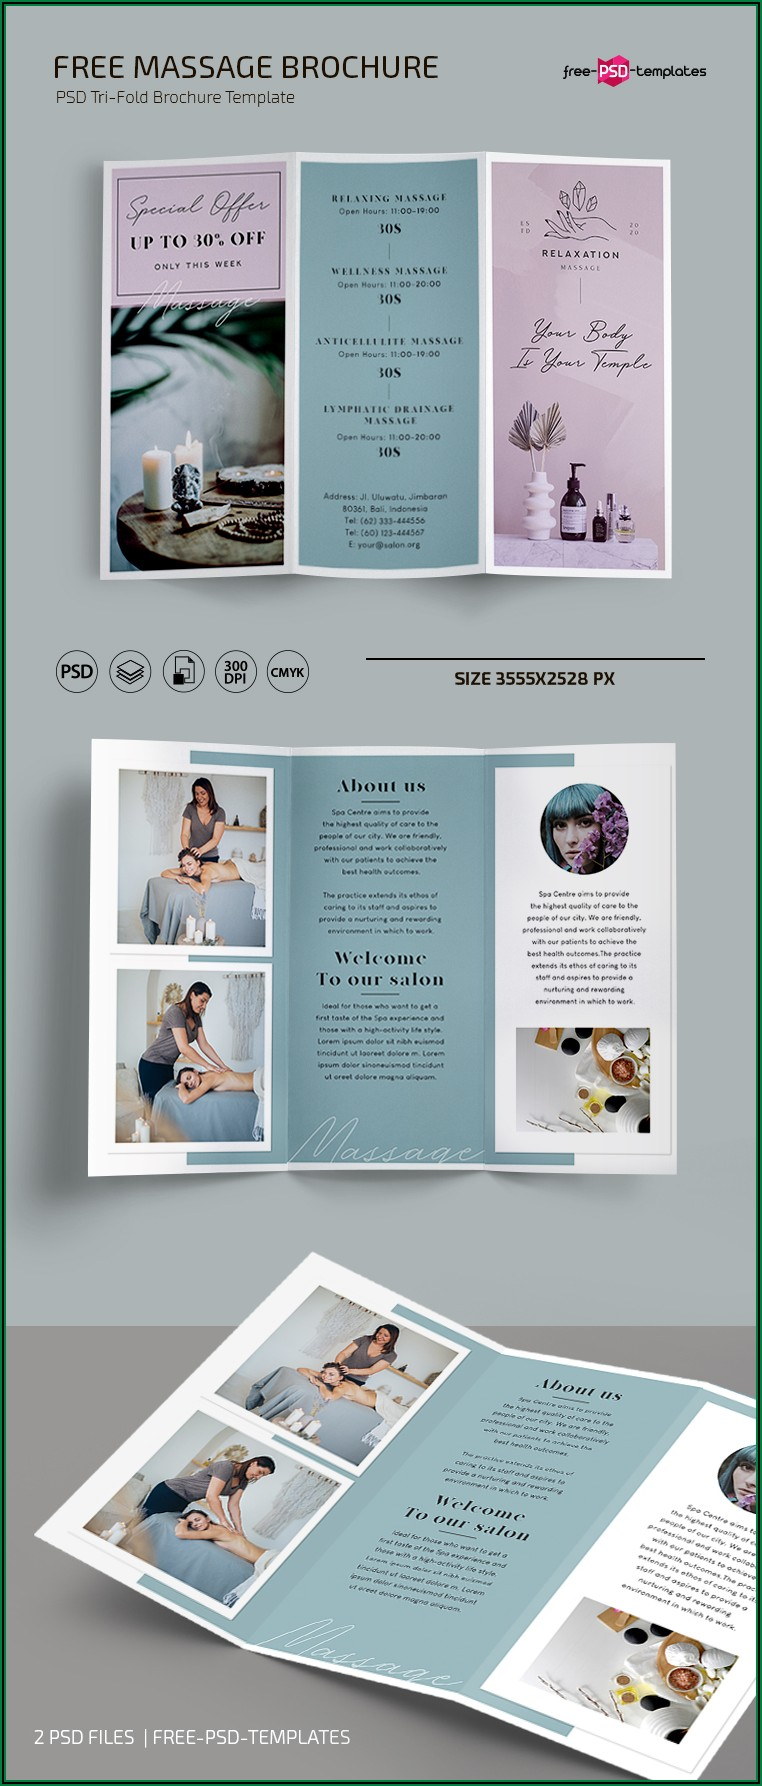 Massage Brochure Templates Free